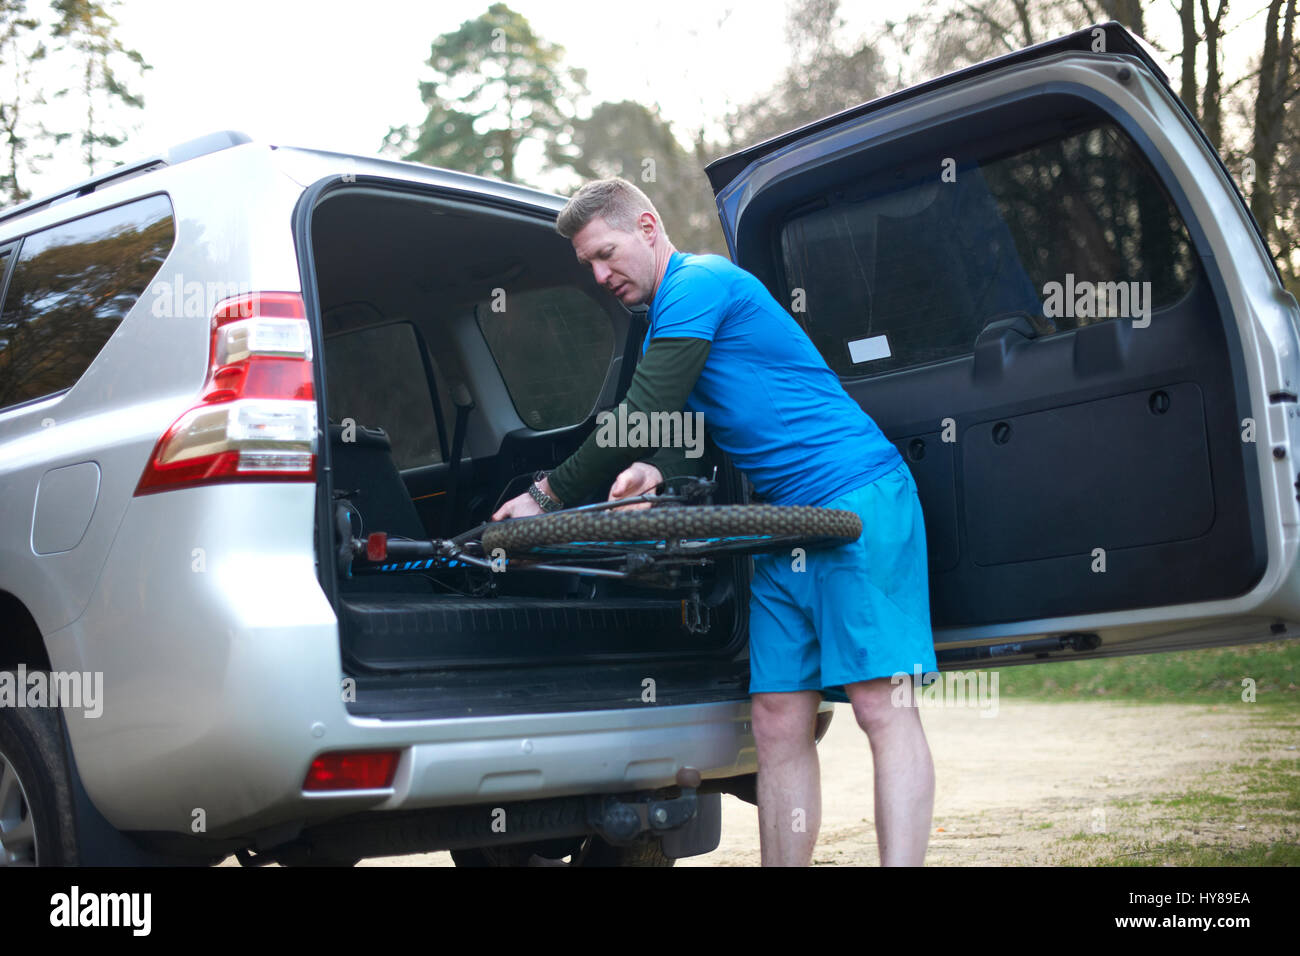 A man puts his mountain bike back in the car after exercise - Stock Image